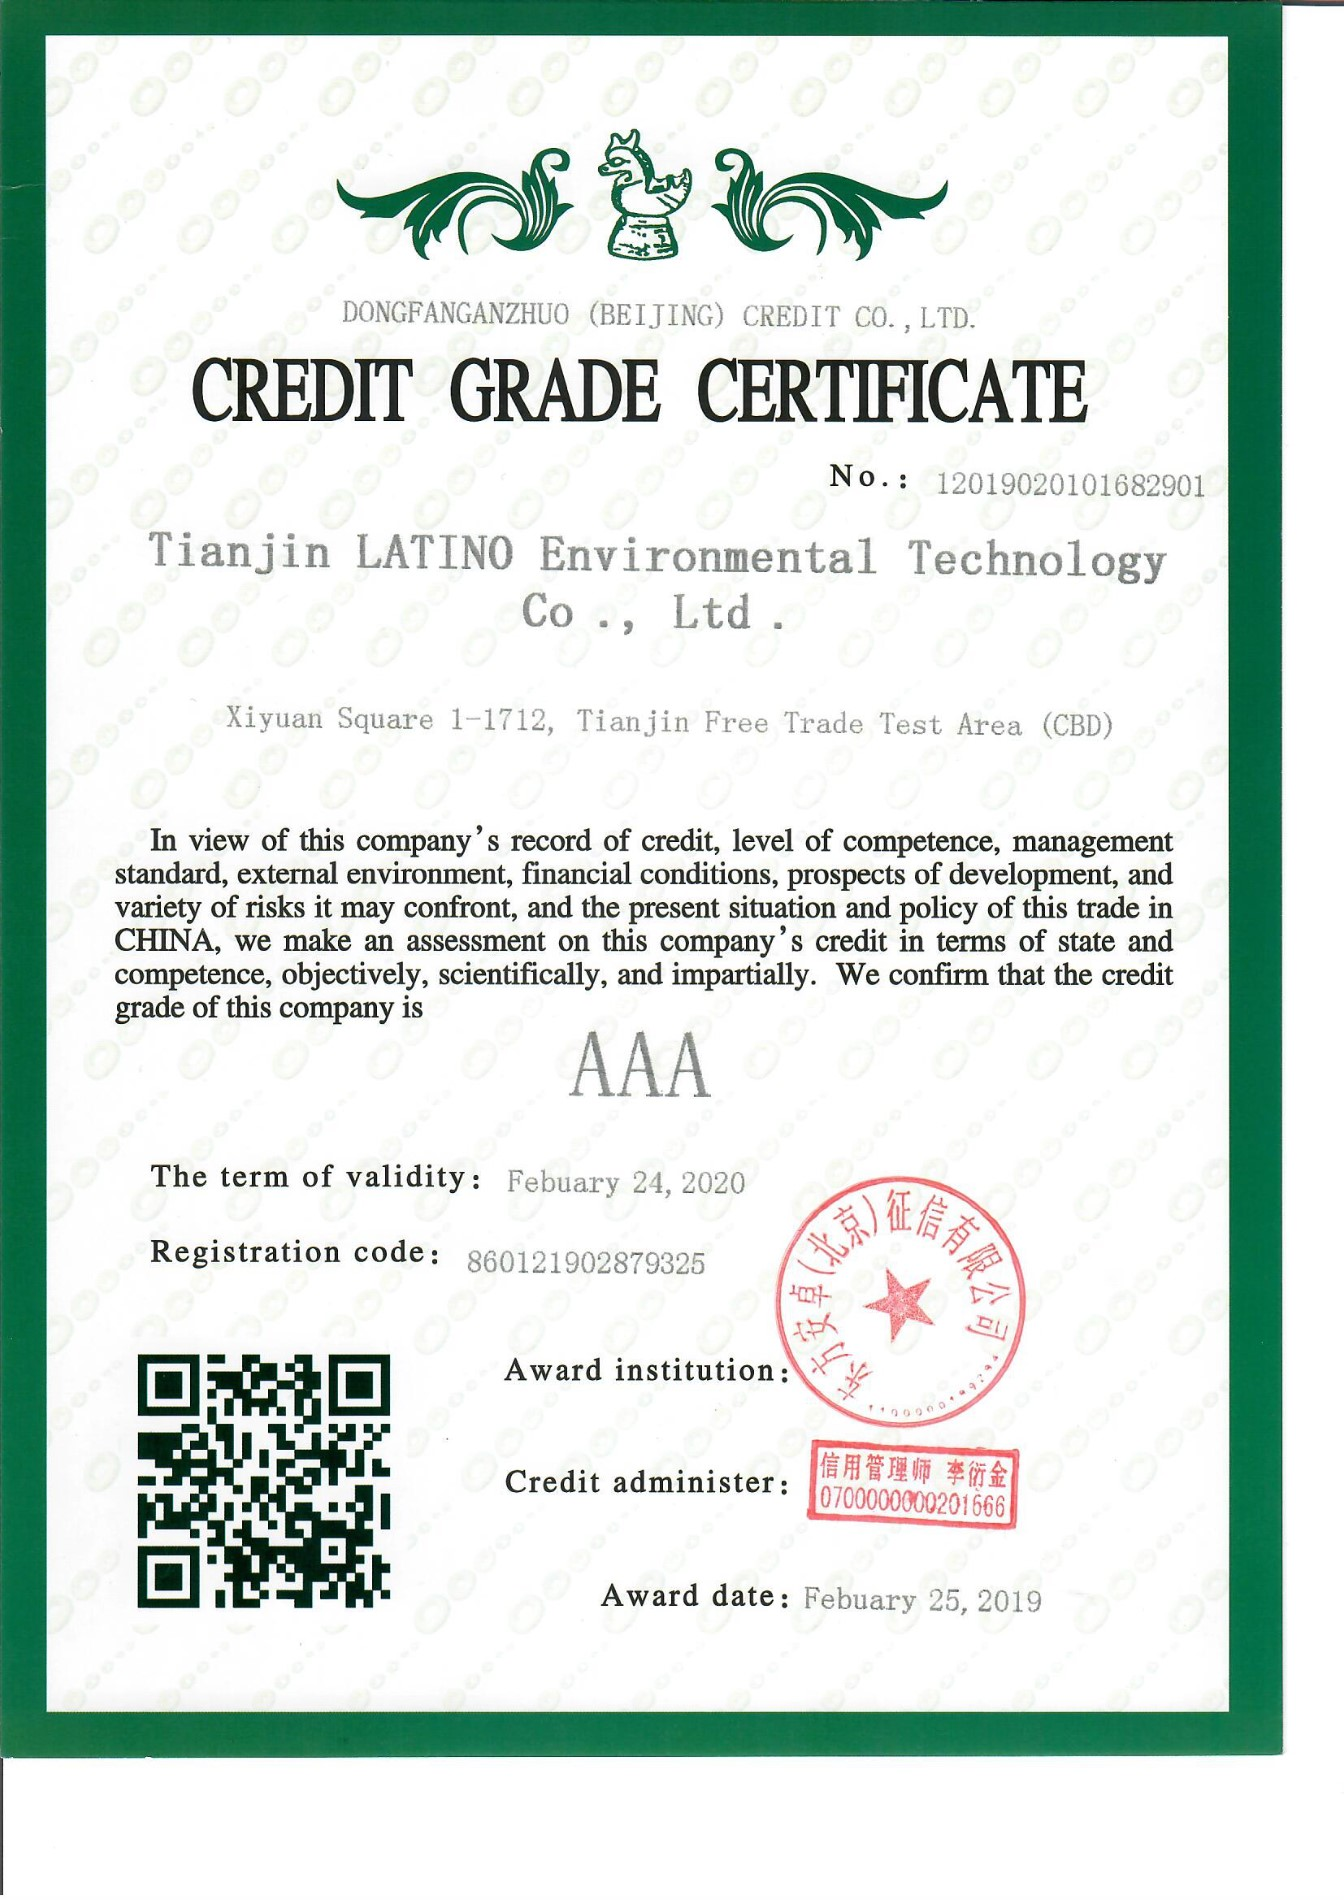 15 Year Awarded the Certificate of Enterprise Credit Grade of AAA Grade